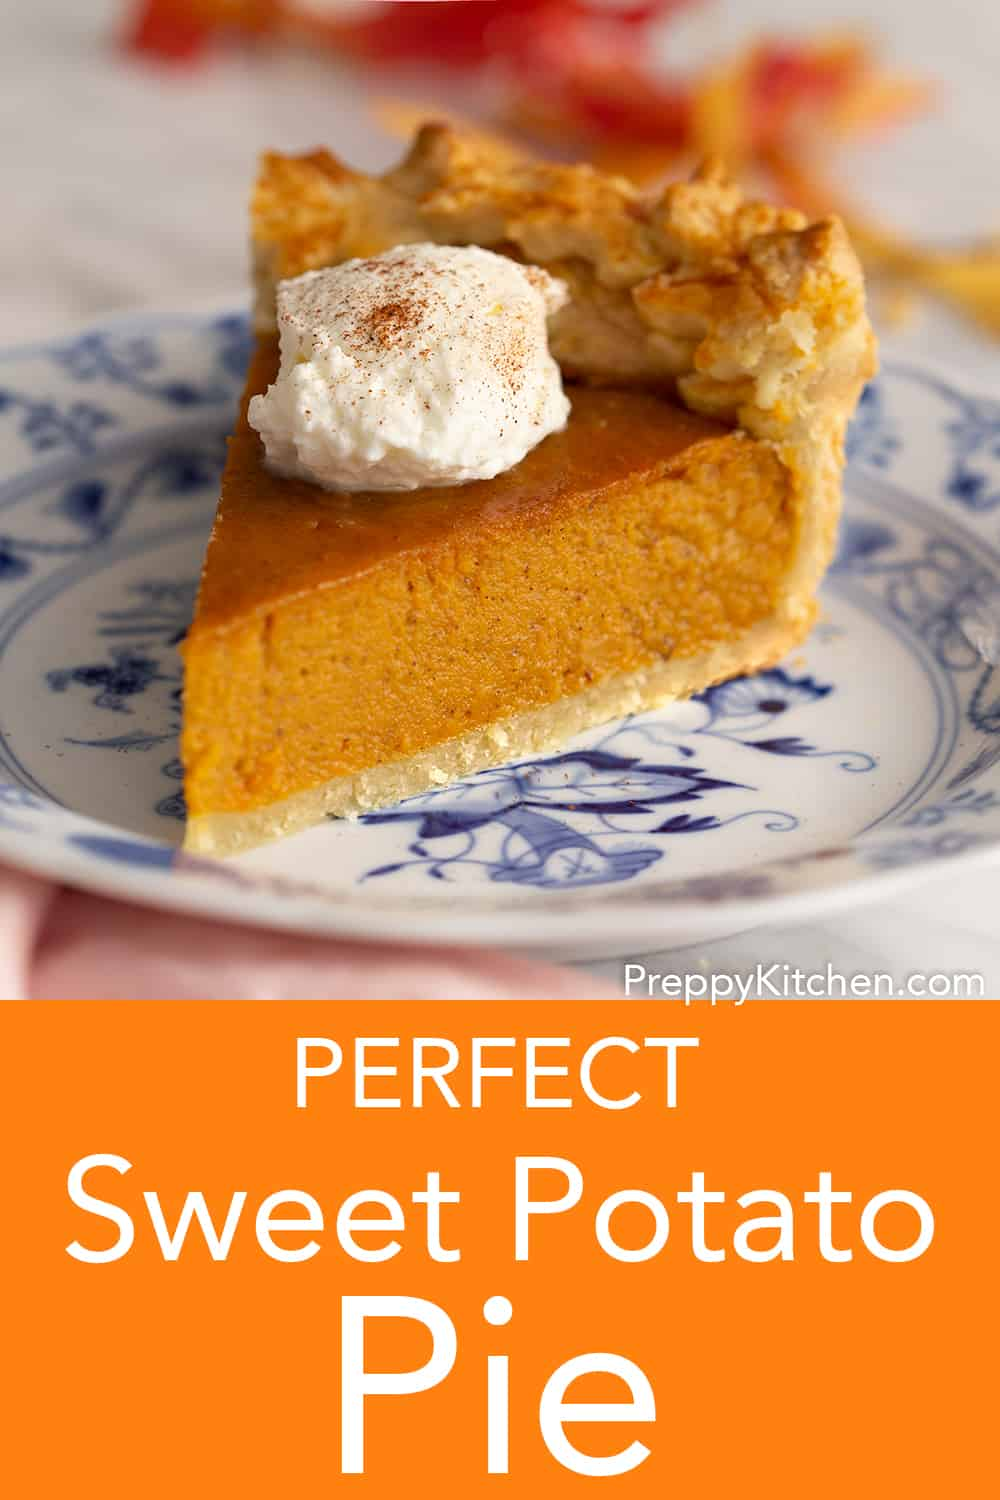 Sweet Potato Pie - Preppy Kitchen